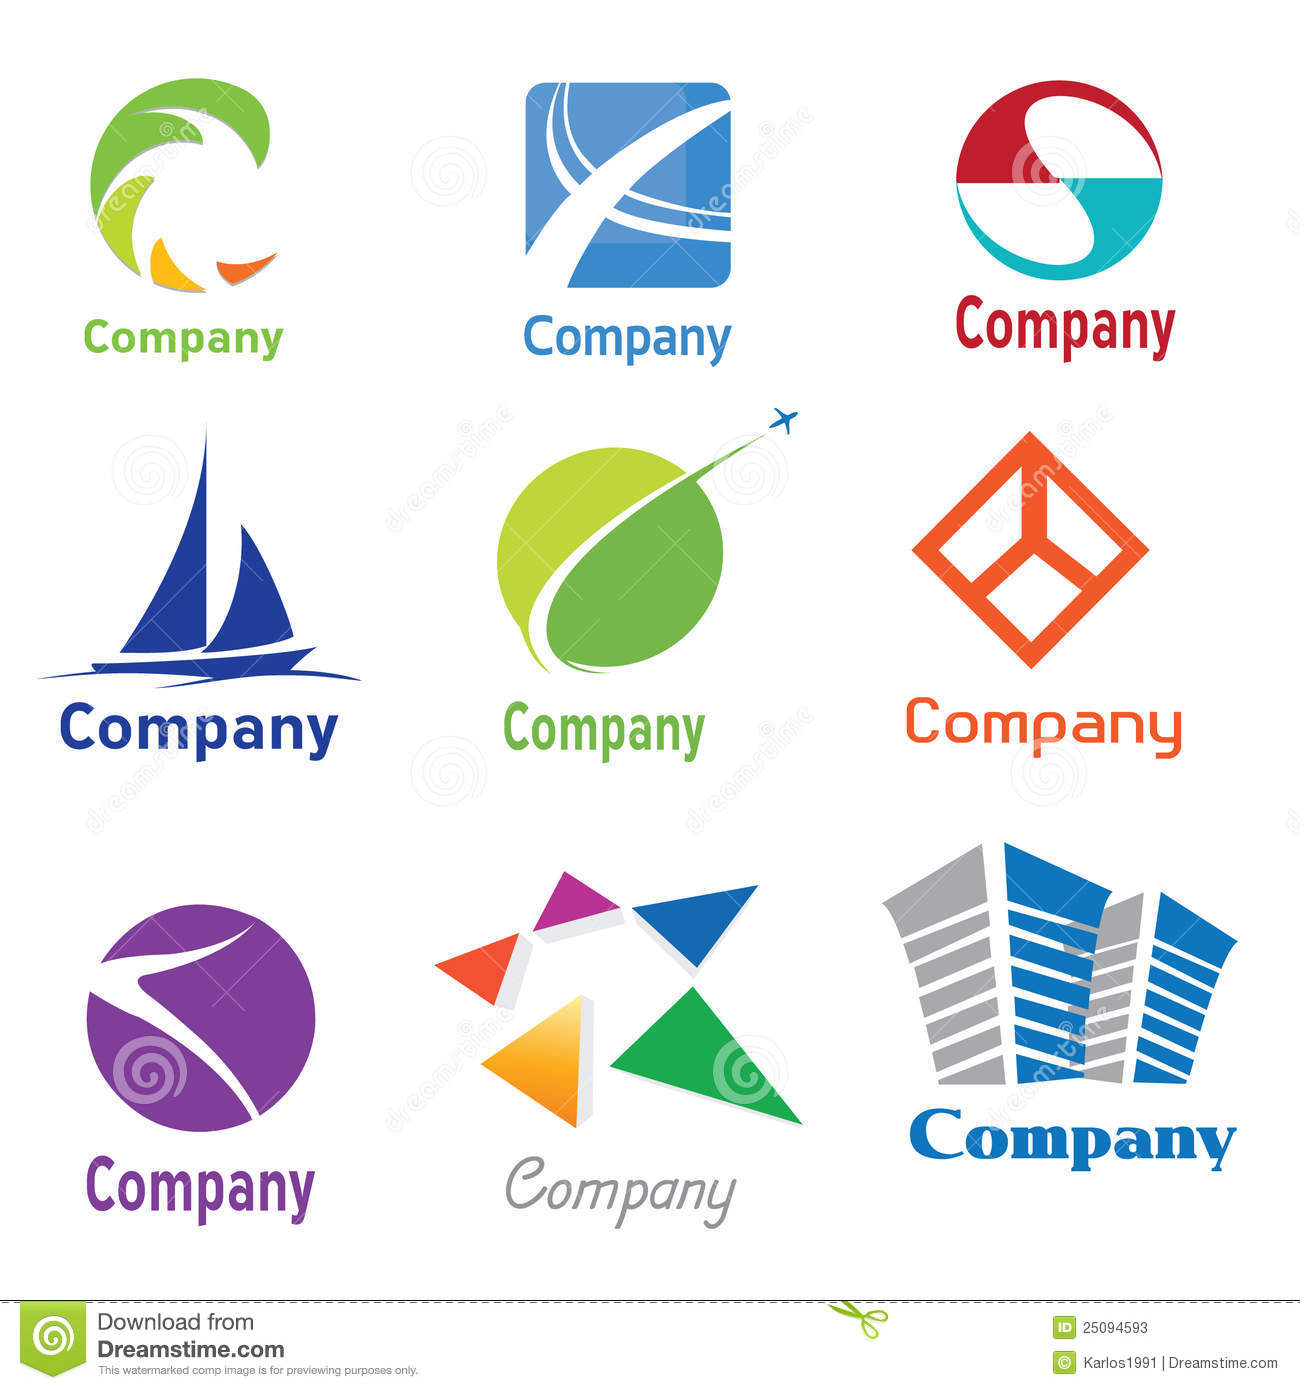 Logo design samples 01 stock vector illustration of glossy 25094593 logo design samples 01 thecheapjerseys Image collections